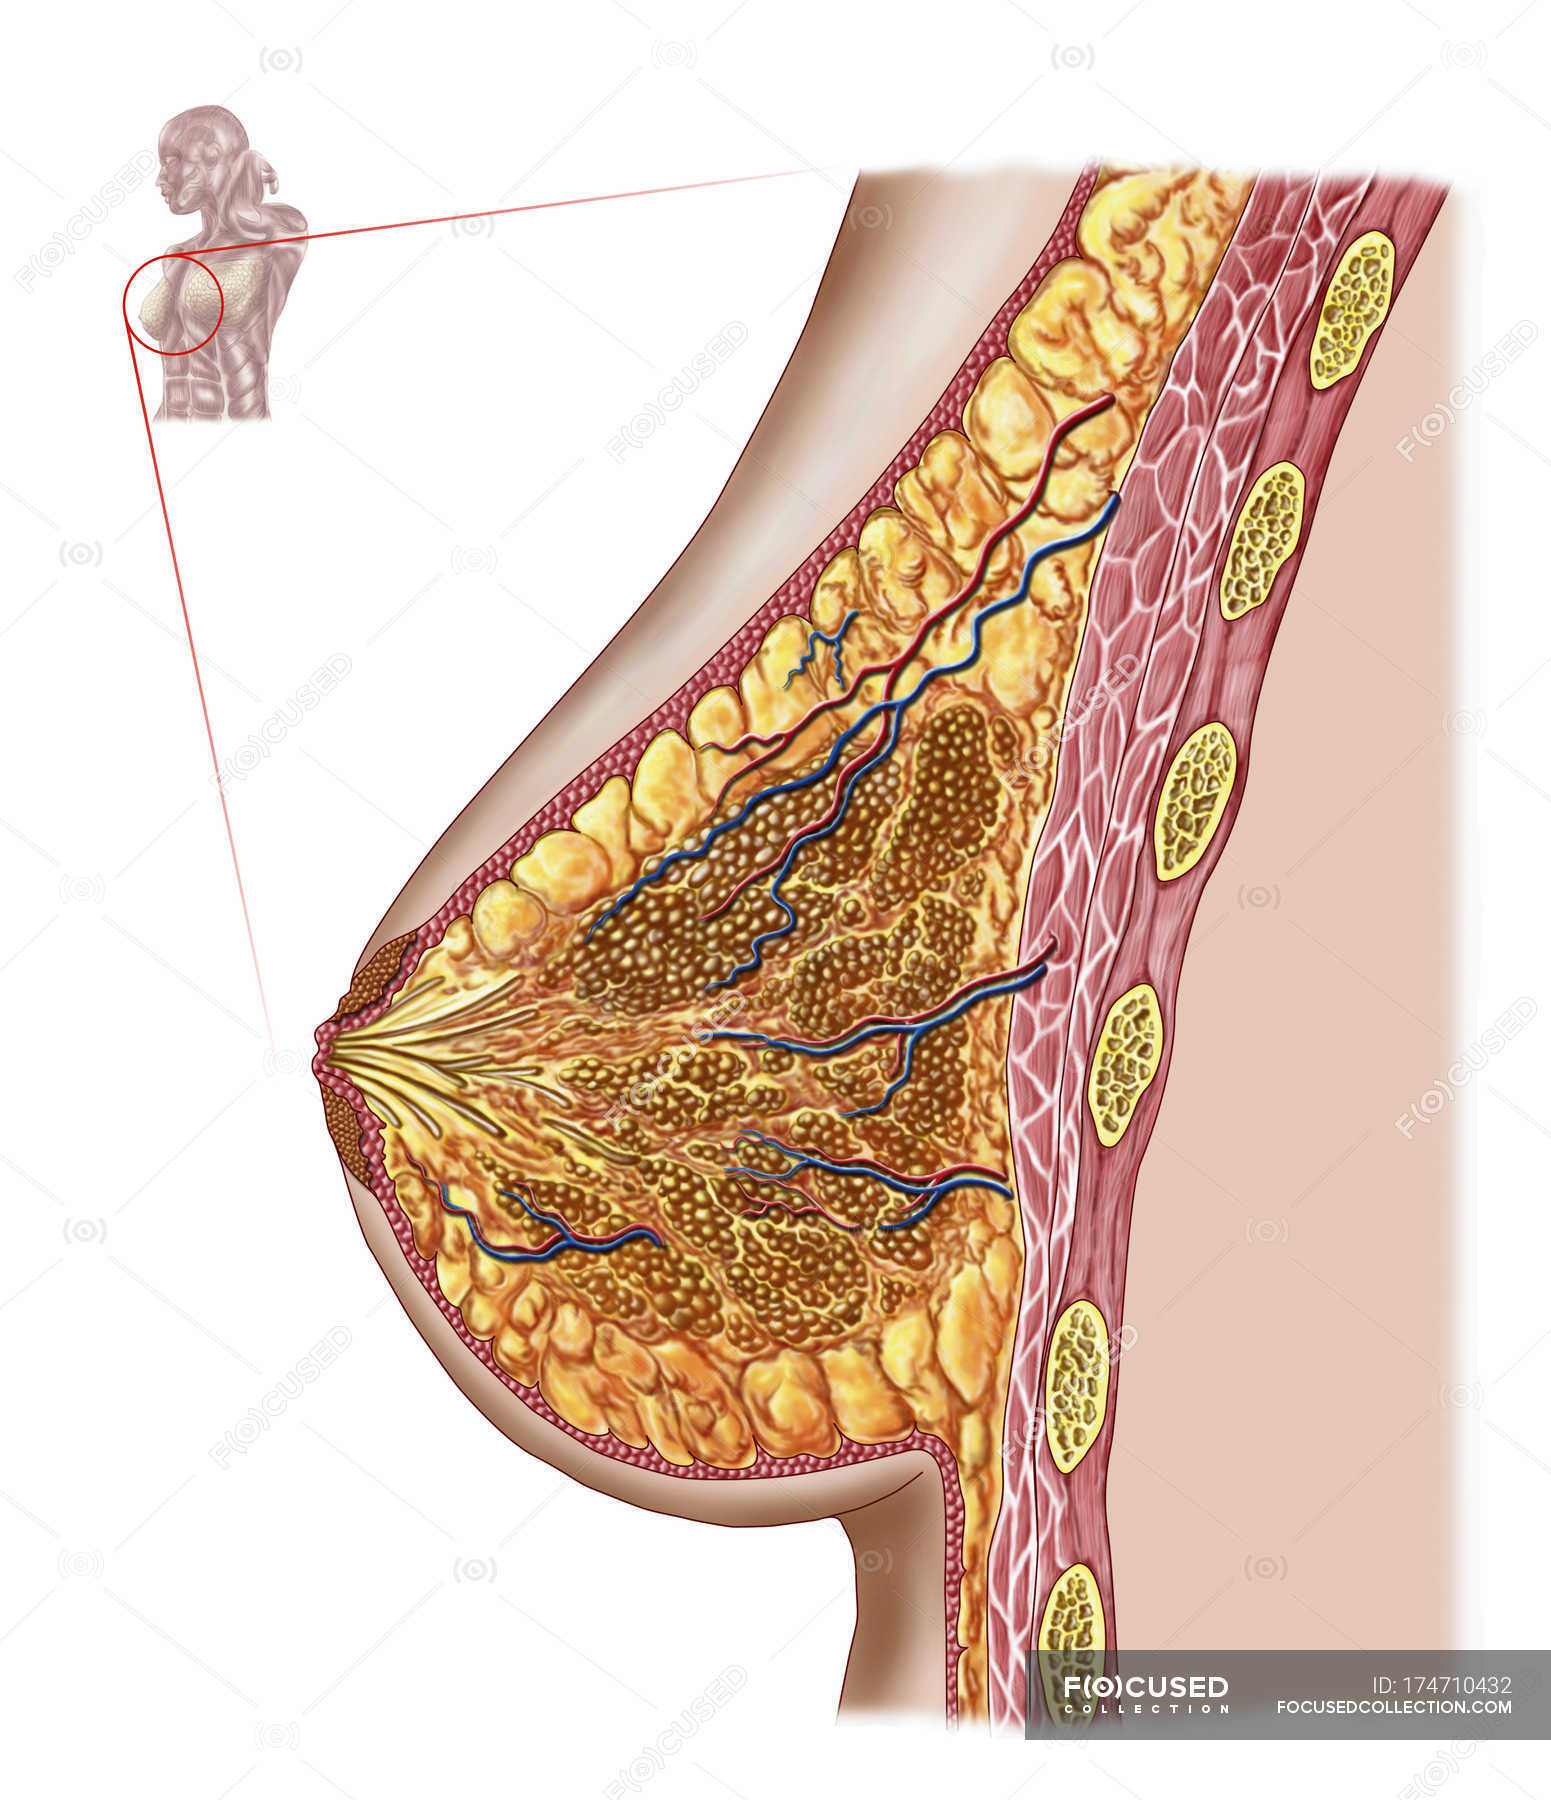 Medical Illustration Of The Female Breast Anatomy Cross Section